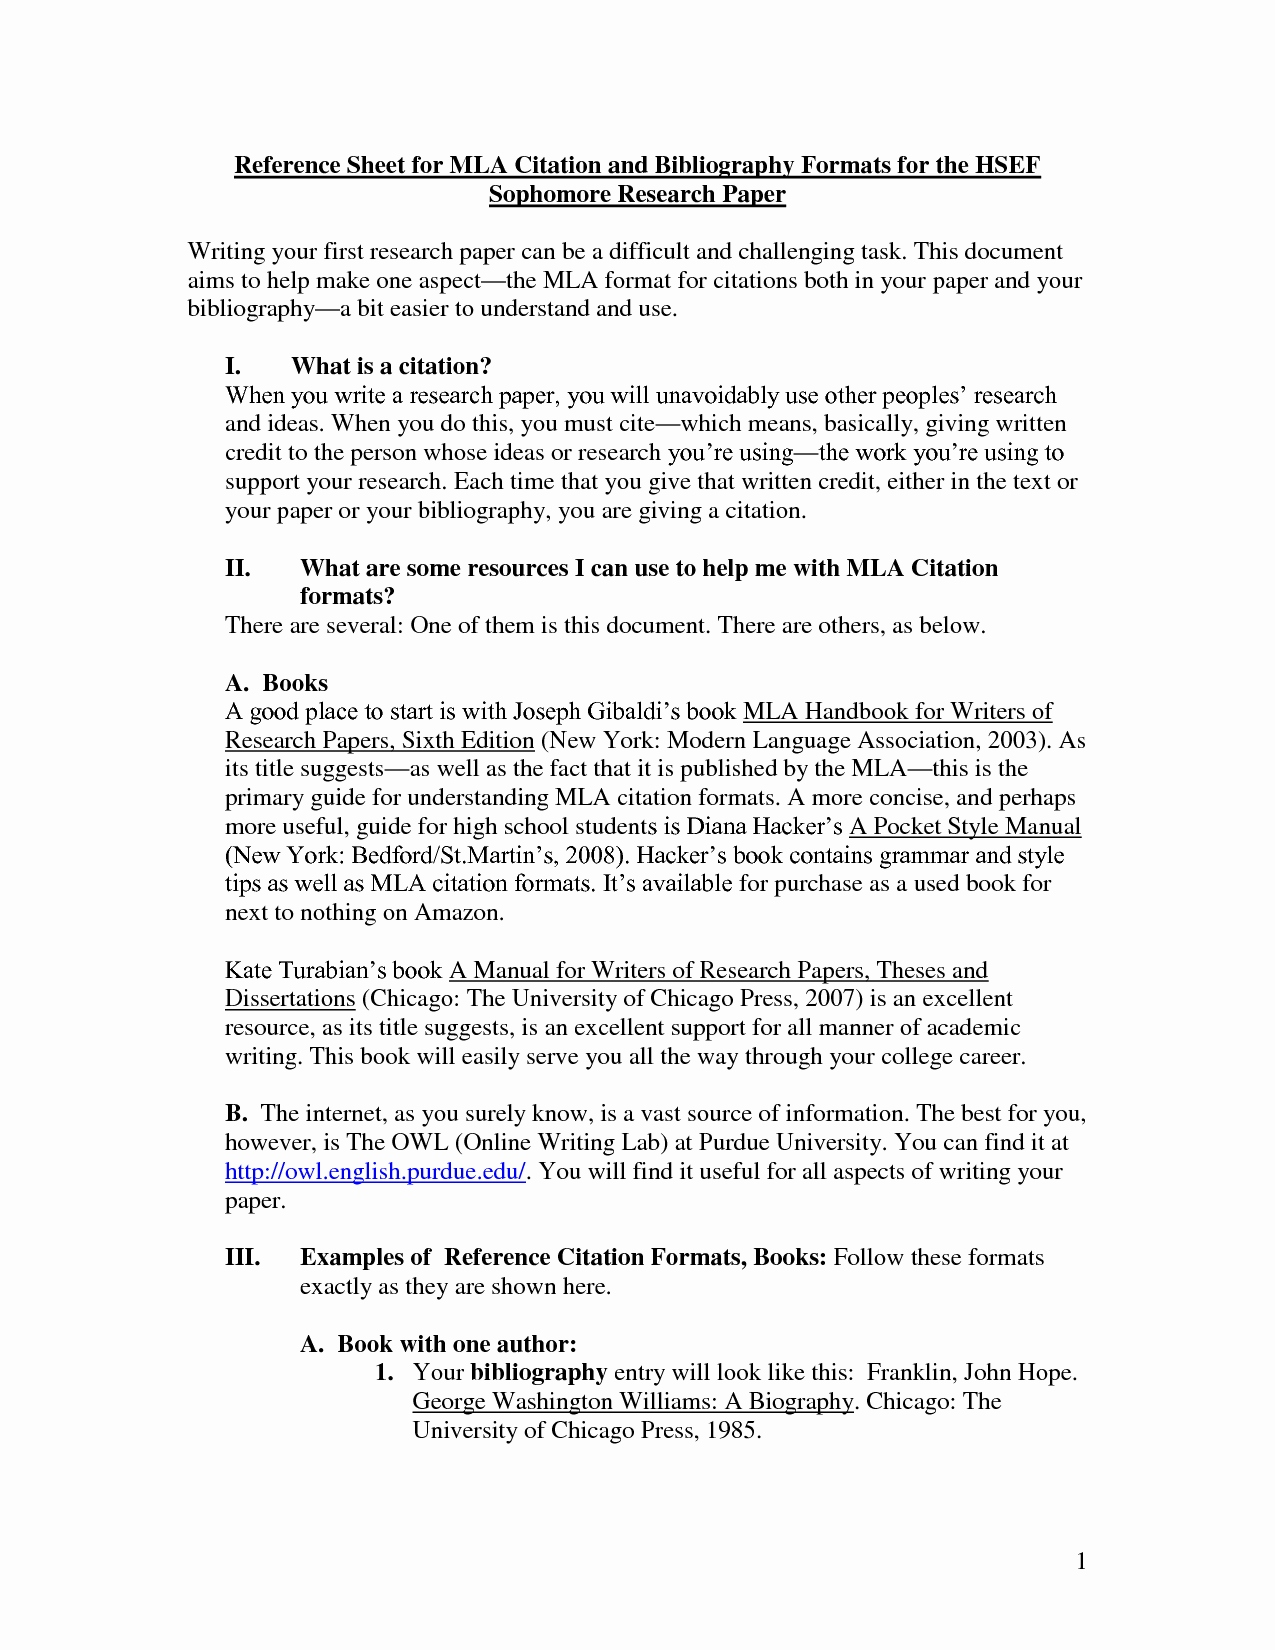 027 Research Paper How To Cite In Extraordinary Examples Of Citing Sources An Essay Photo Inspirations References For Resume Template Reference Format Awesome Fascinating A With No Author Mla Style Example Full